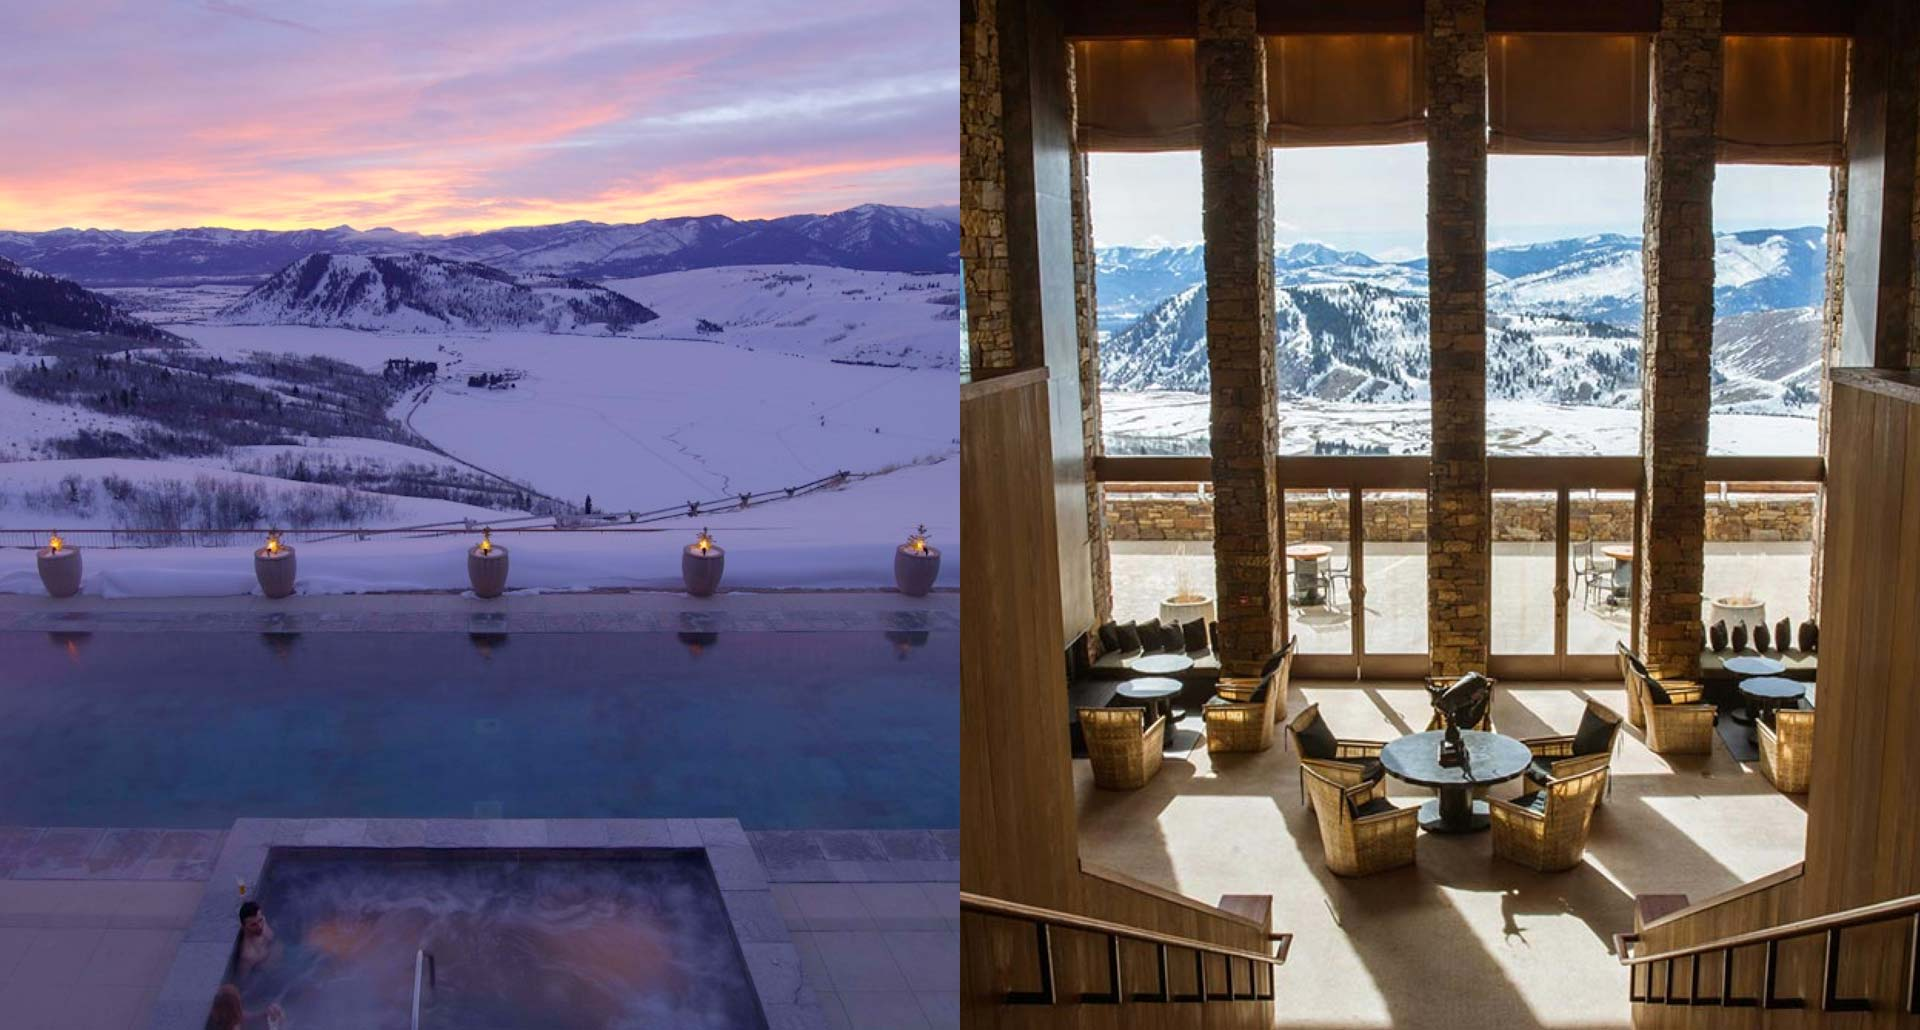 Amangani - luxury boutique hotel in Jackson Hole, WY